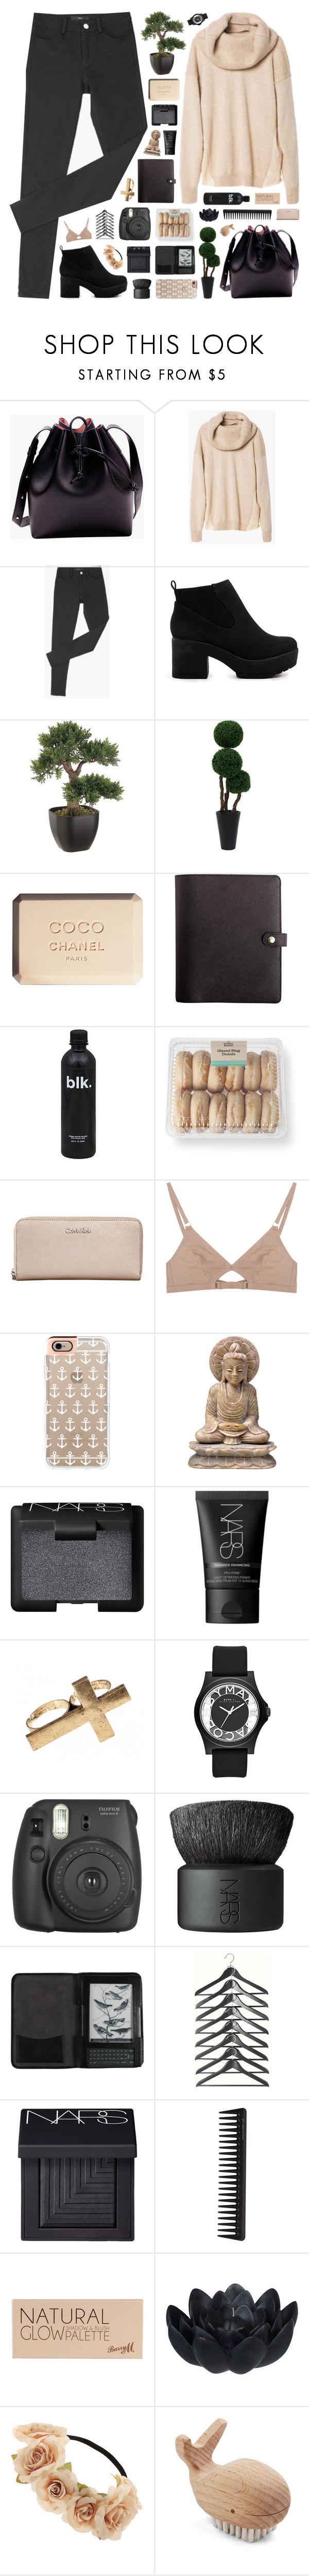 """""""How to Wear : Oversized Sweaters"""" by novalikarida ❤ liked on Polyvore featuring ASOS, Chanel, Calvin Klein, The Nude Label, Casetify, NARS Cosmetics, Marc by Marc Jacobs, Fujifilm, Cole Haan and GHD"""